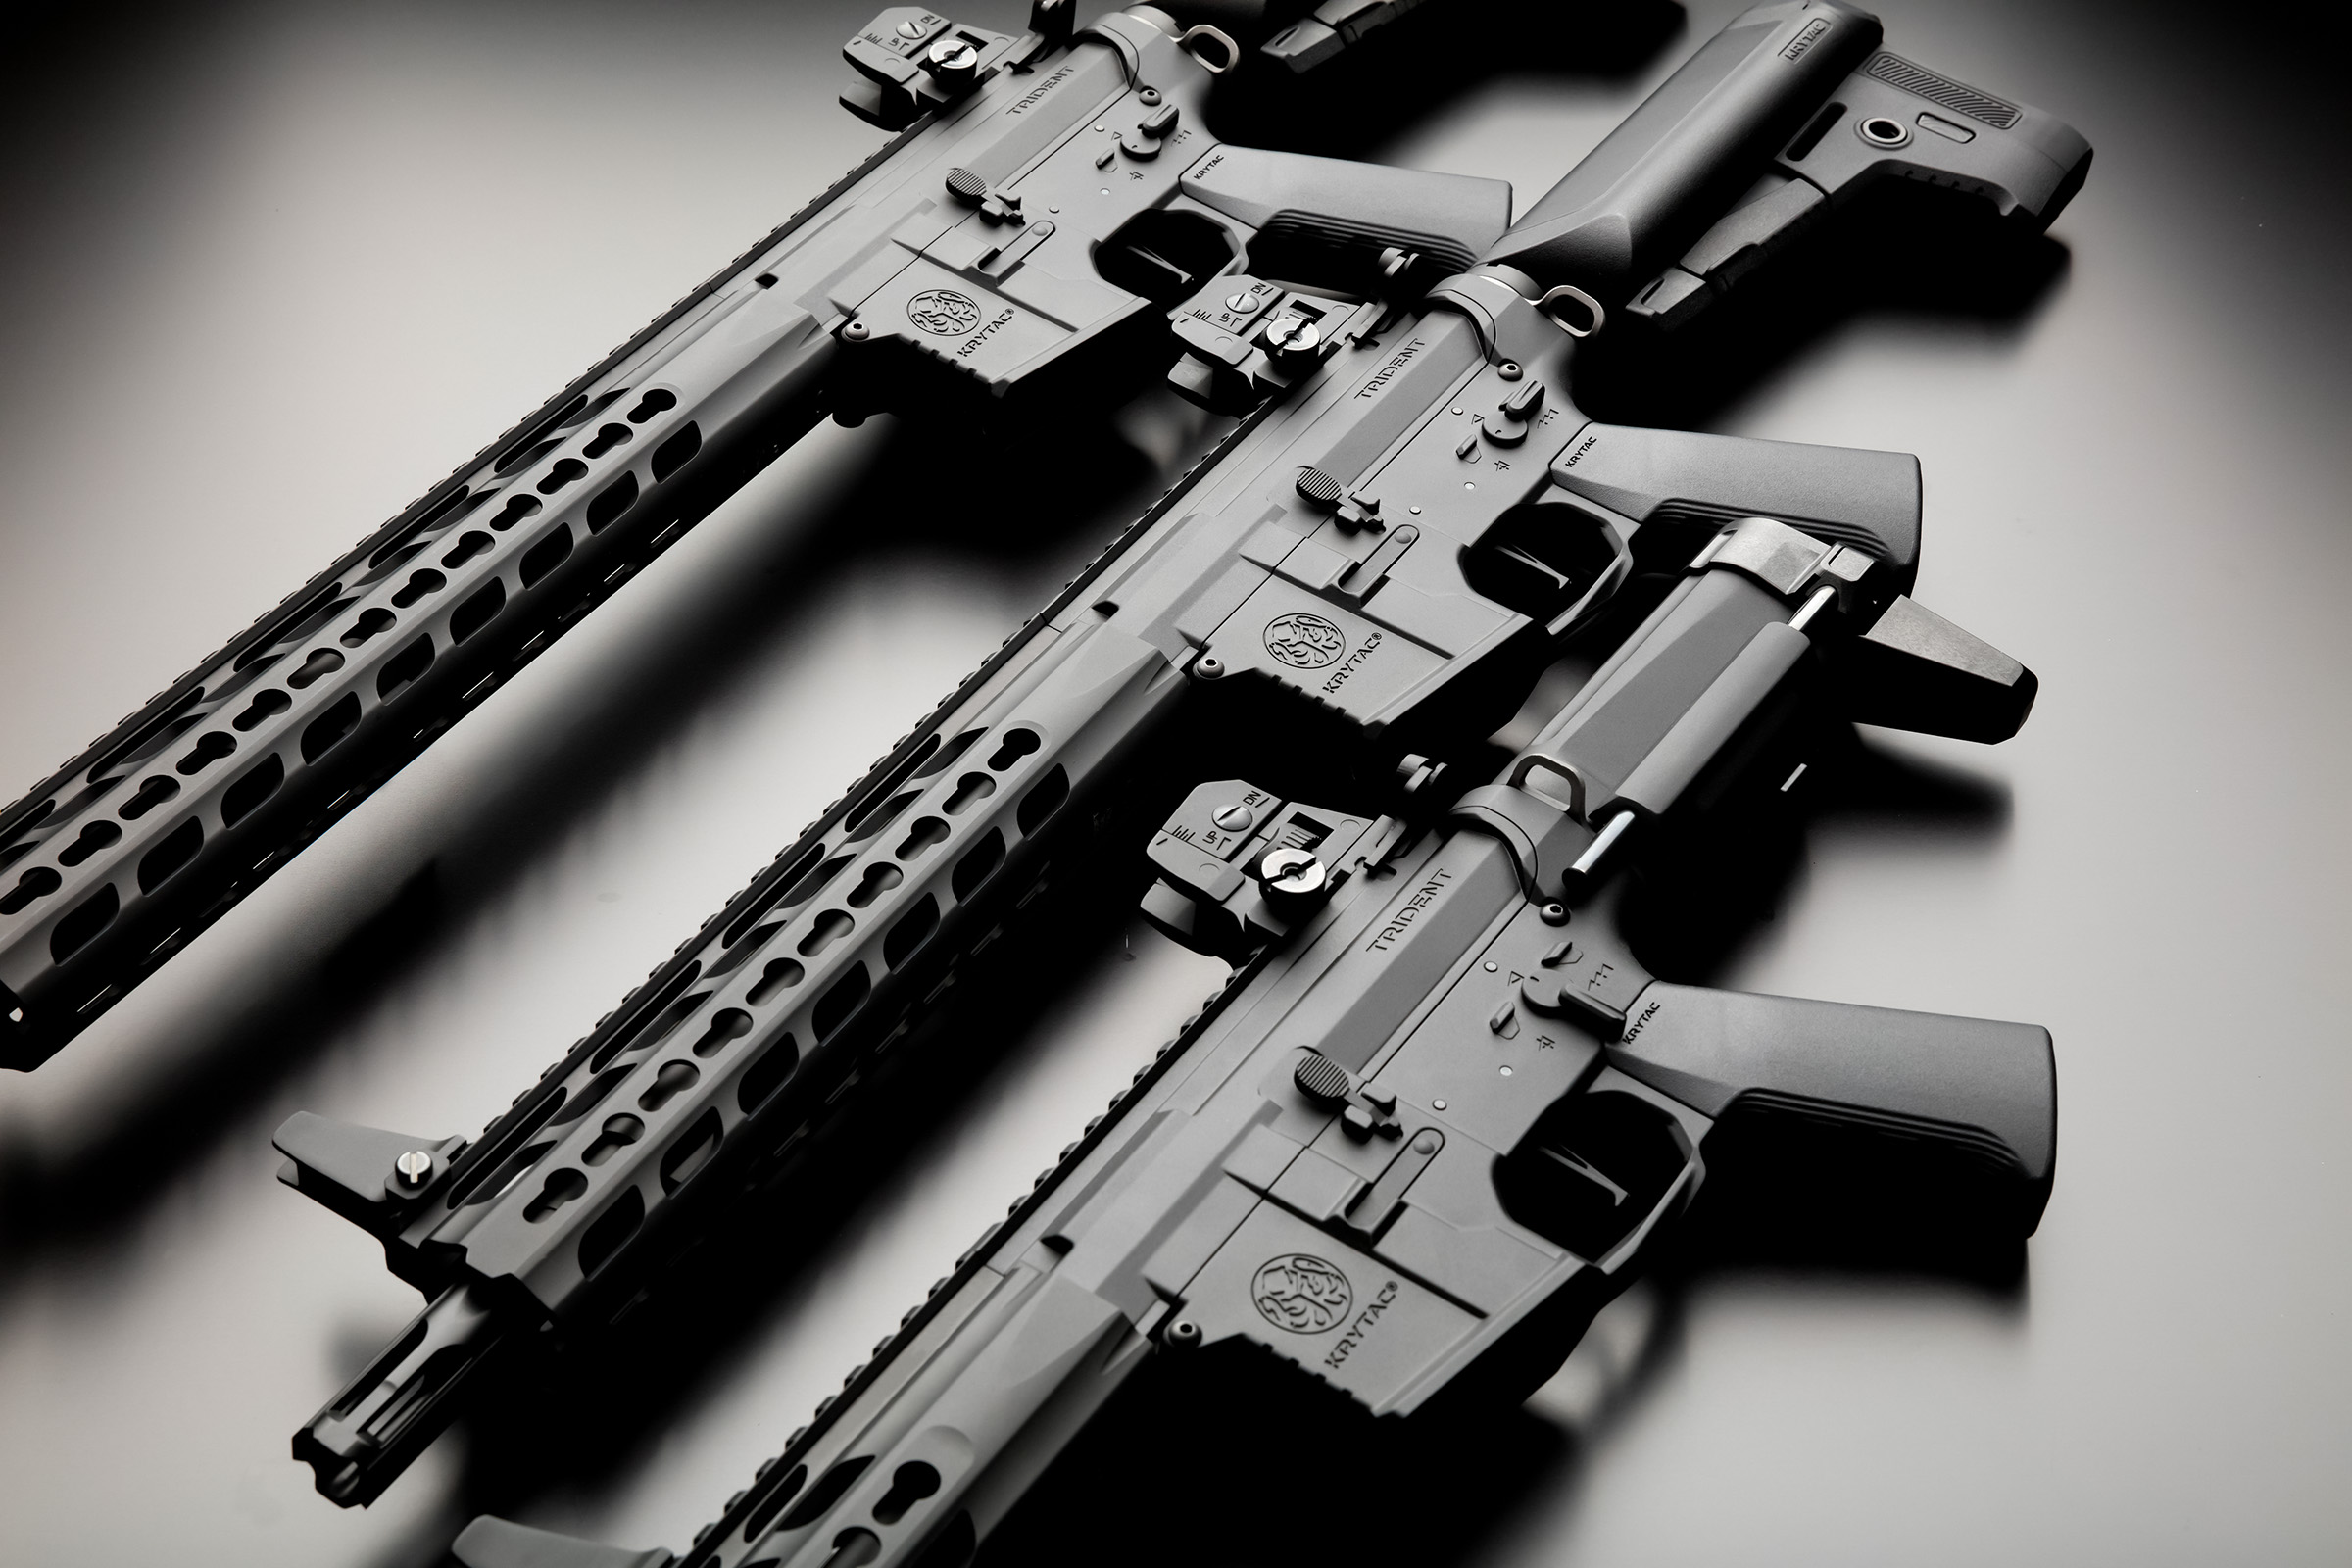 KRYTAC MKII Series - CRB, SPR and PDW models | Airsoftology Review